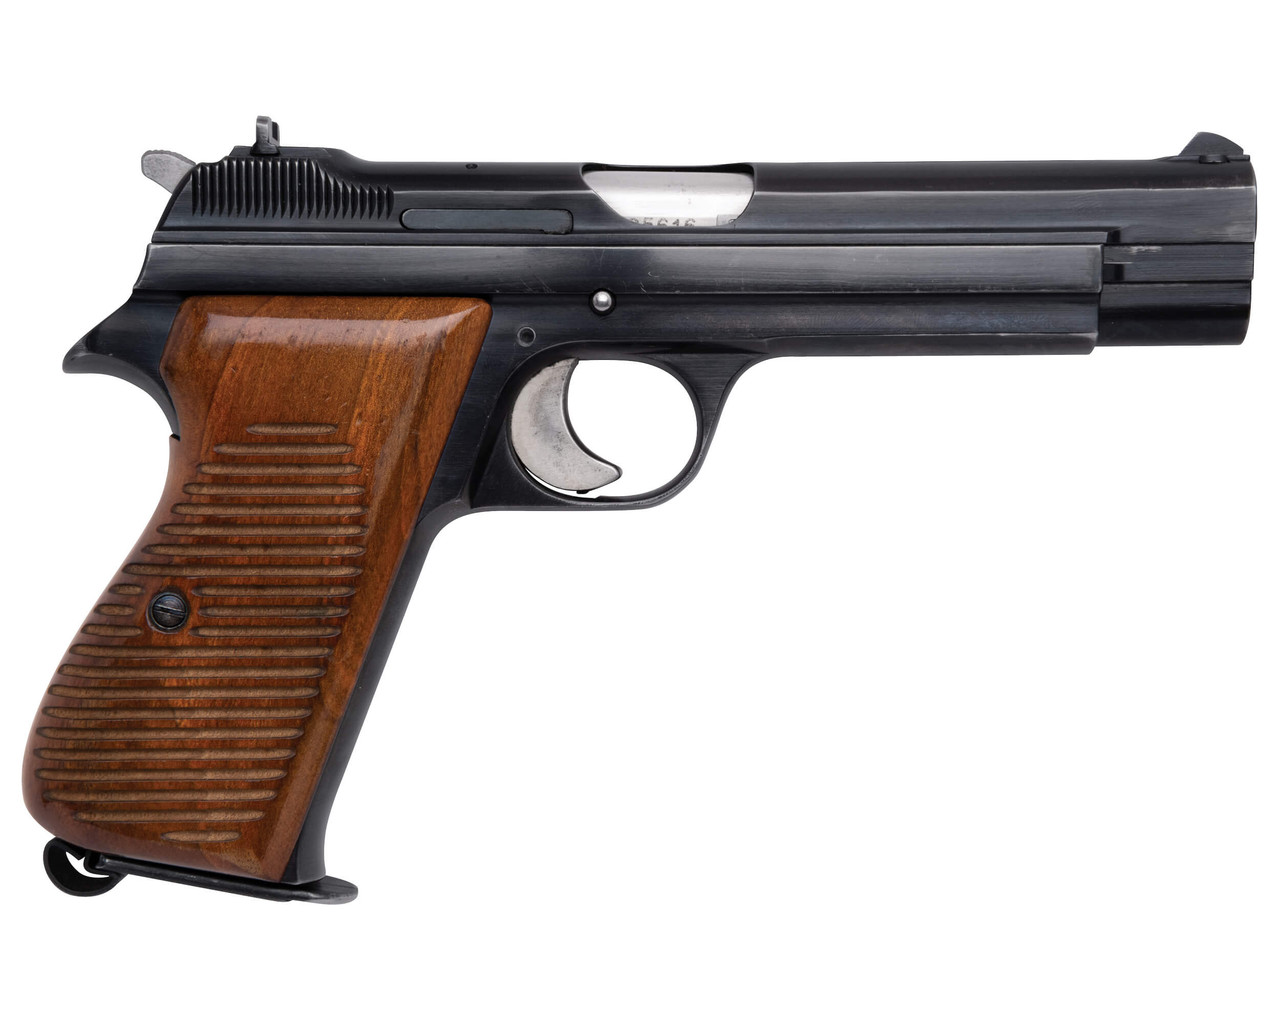 Swiss SIG P49 Officer's Package with Trunk - #3